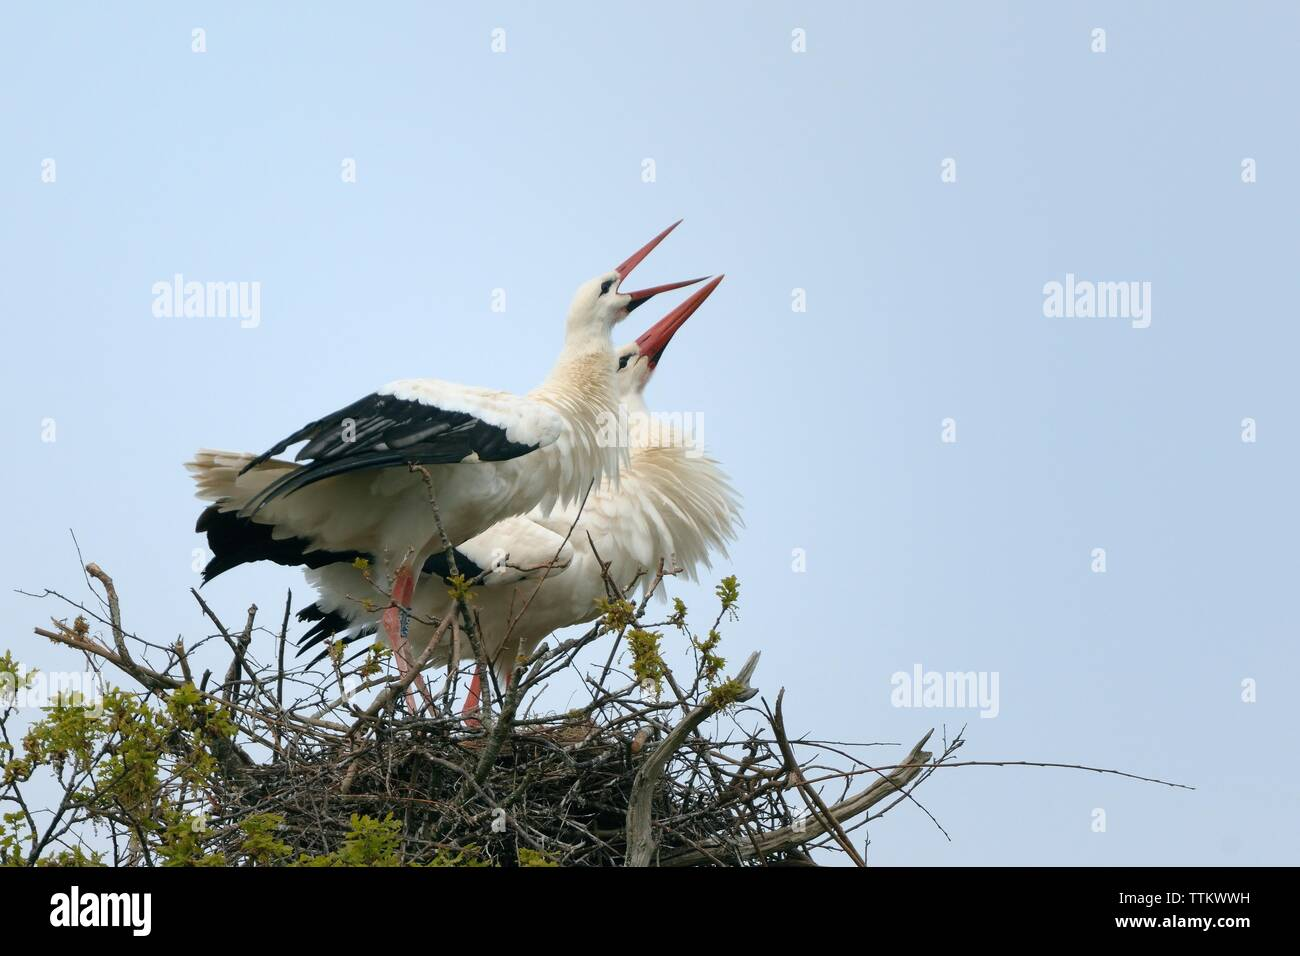 White stork (Ciconia ciconia) pair perform an aggressive display as a buzzard flies too close to their nest in an oak tree, Knepp Estate, Sussex, UK. Stock Photo